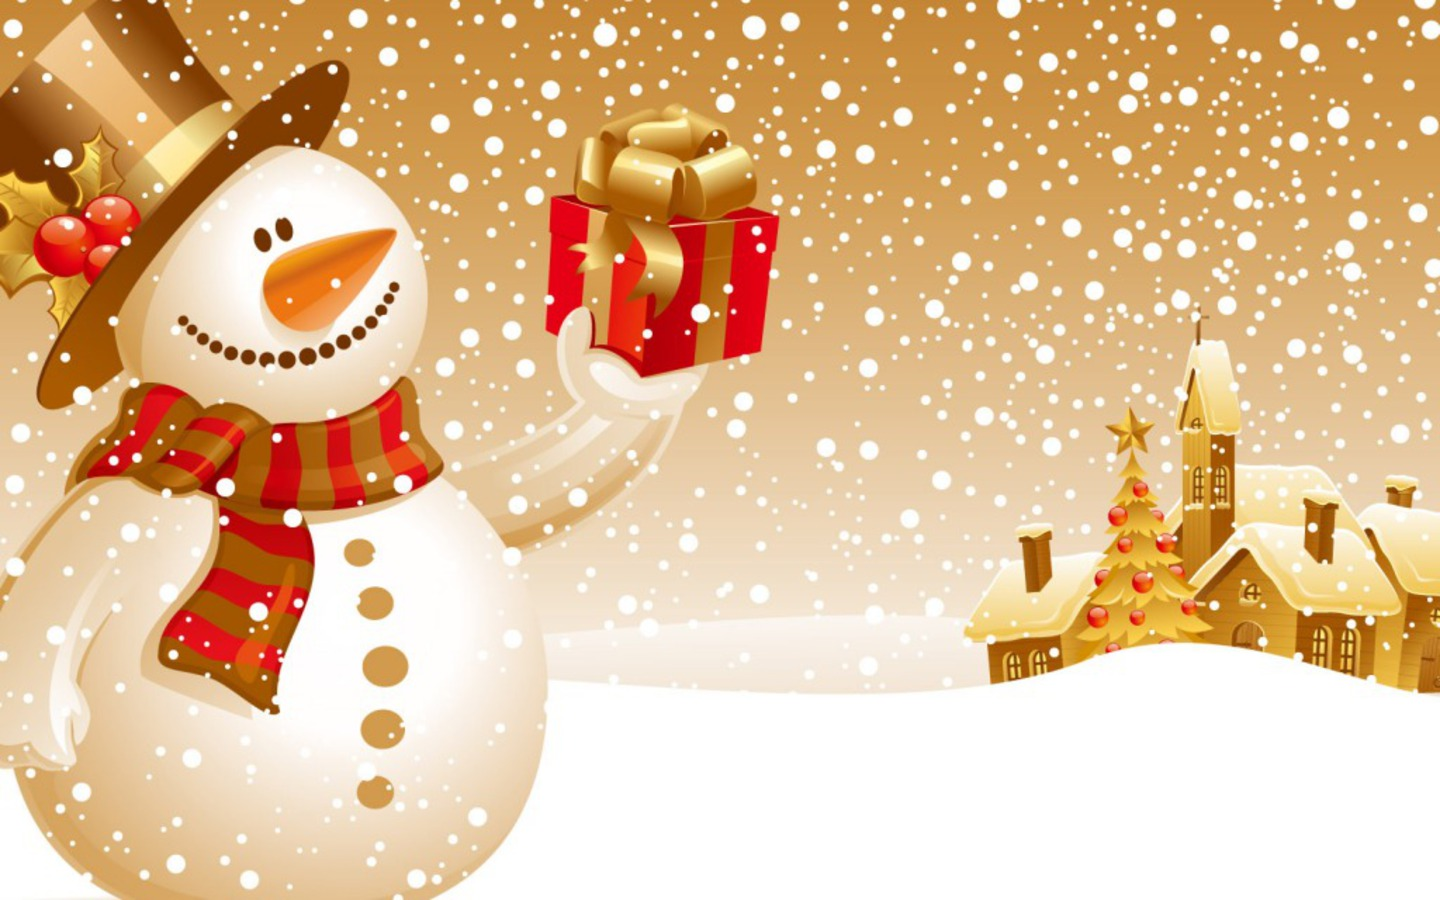 Free Snowman Screensavers Posted By Sarah Peltier